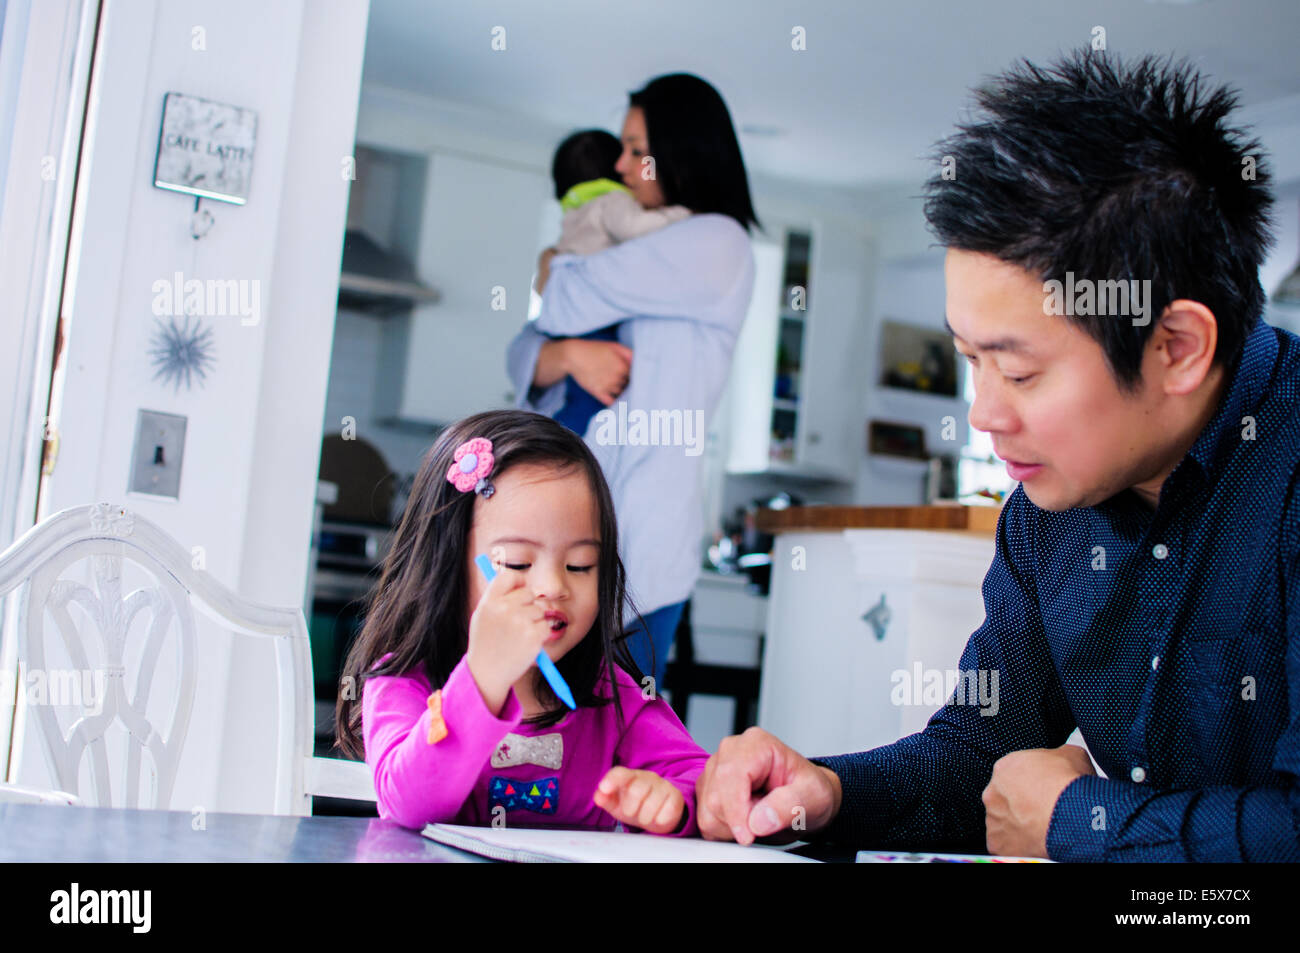 Mid adult father teaching toddler daughter in kitchen Stock Photo